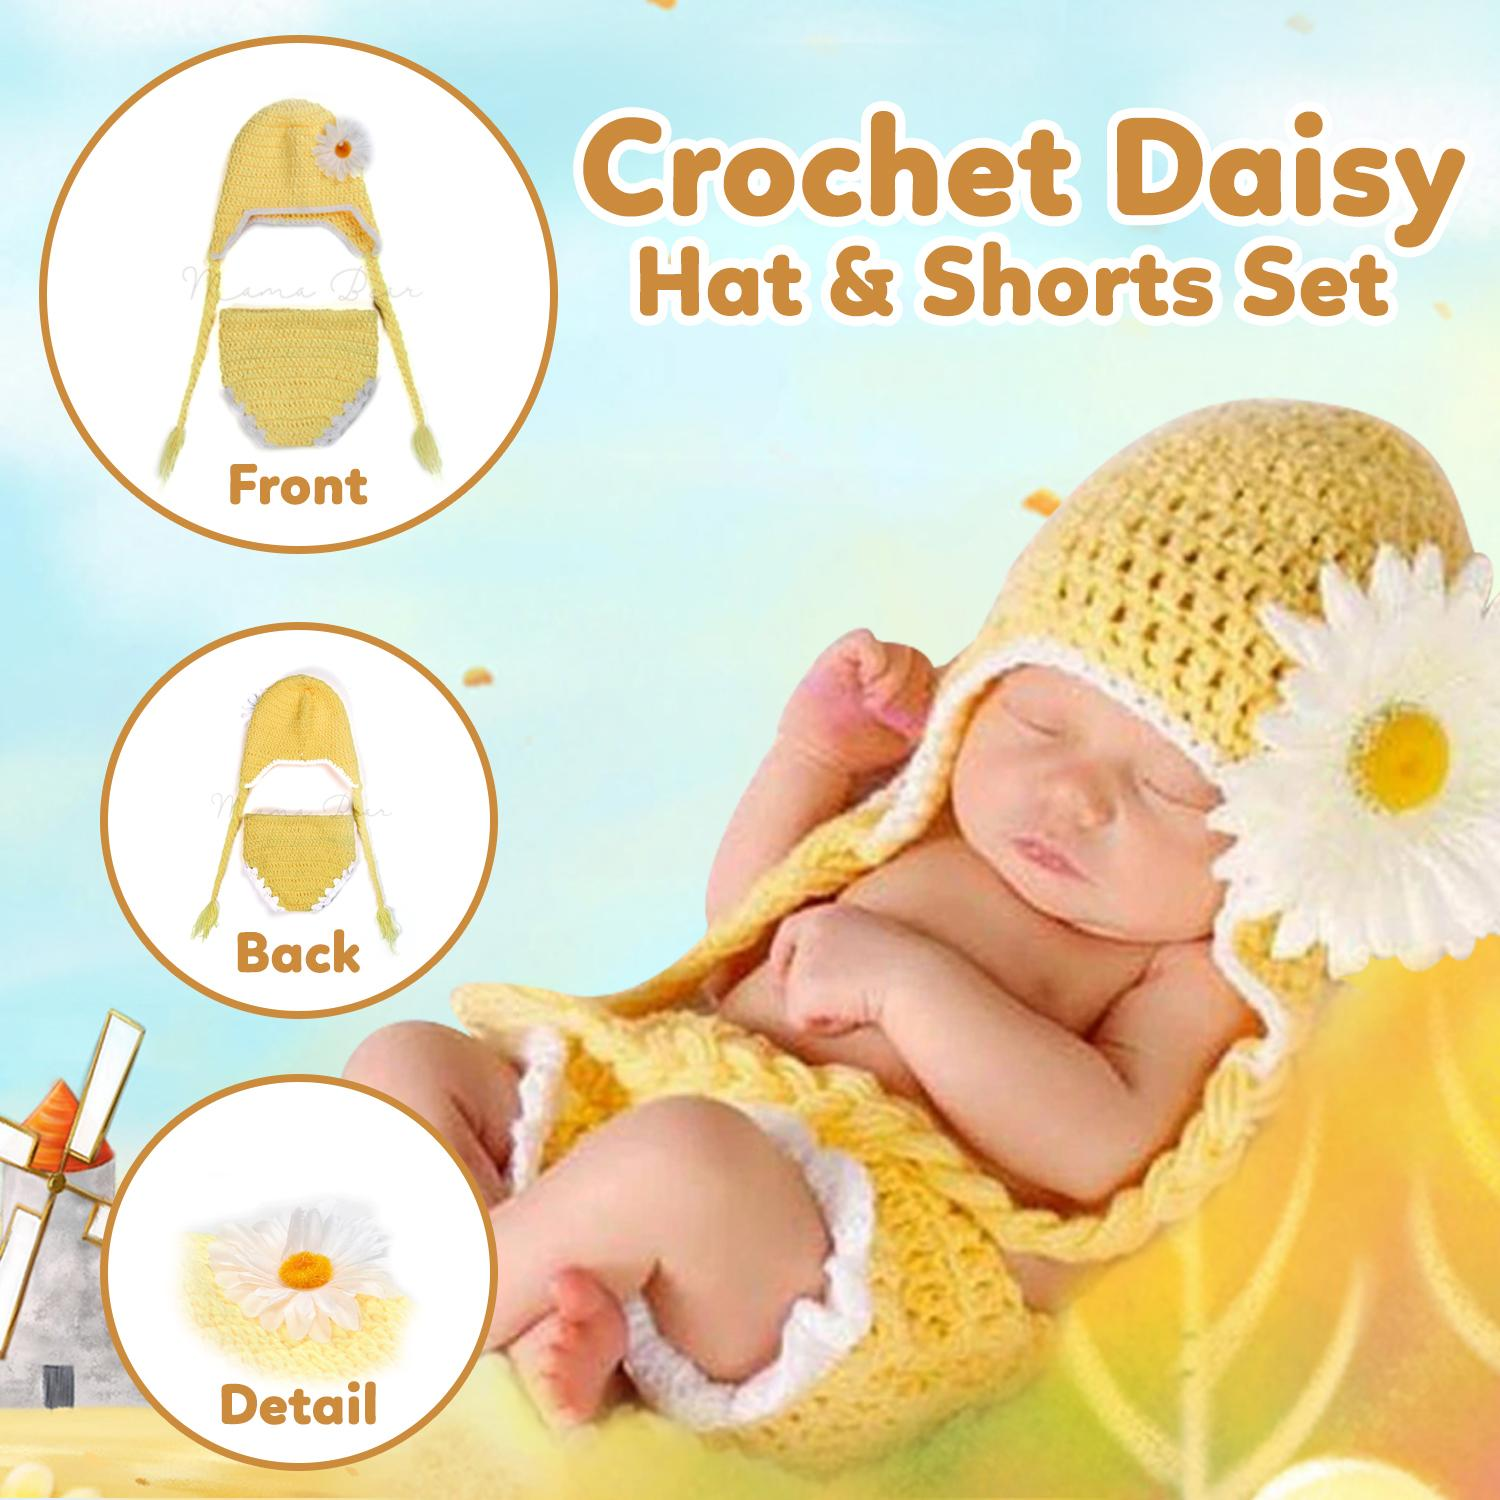 392945e6604 Newborn Baby Photography Prop Knitting Costume Outfits Crochet Cotton  Chrysanthemum Baby Girl Photo Props Crochet Daisy